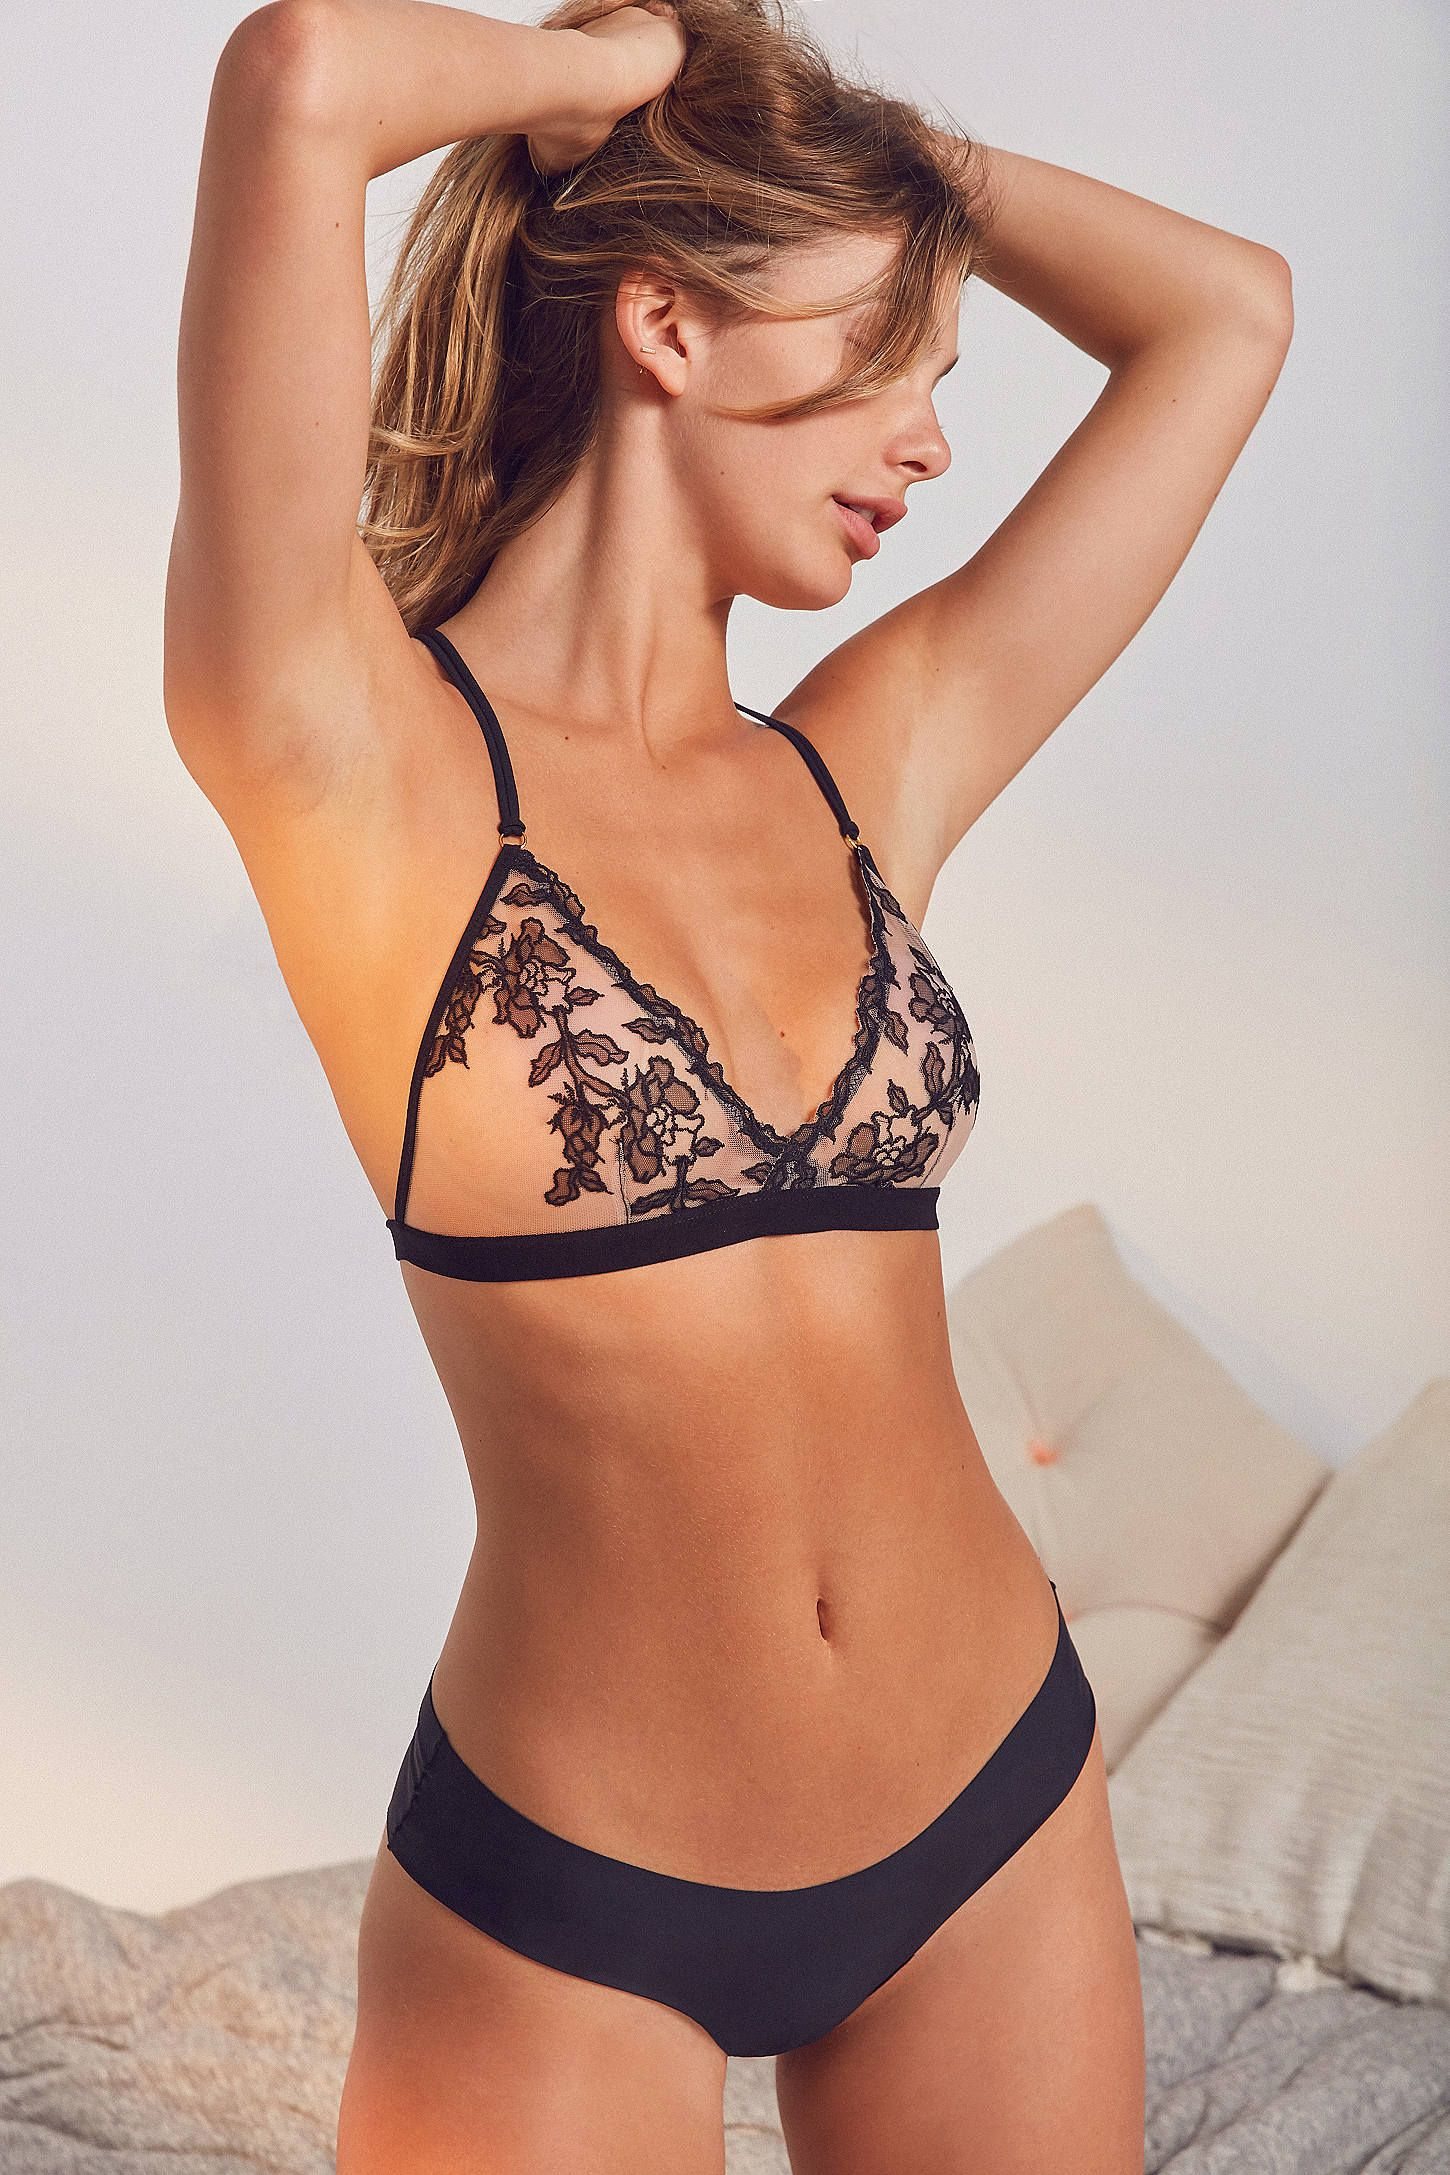 59e2570d6999b Shop Out From Under Gigi Floral Mesh Triangle Bra at Urban Outfitters  today. We carry all the latest styles